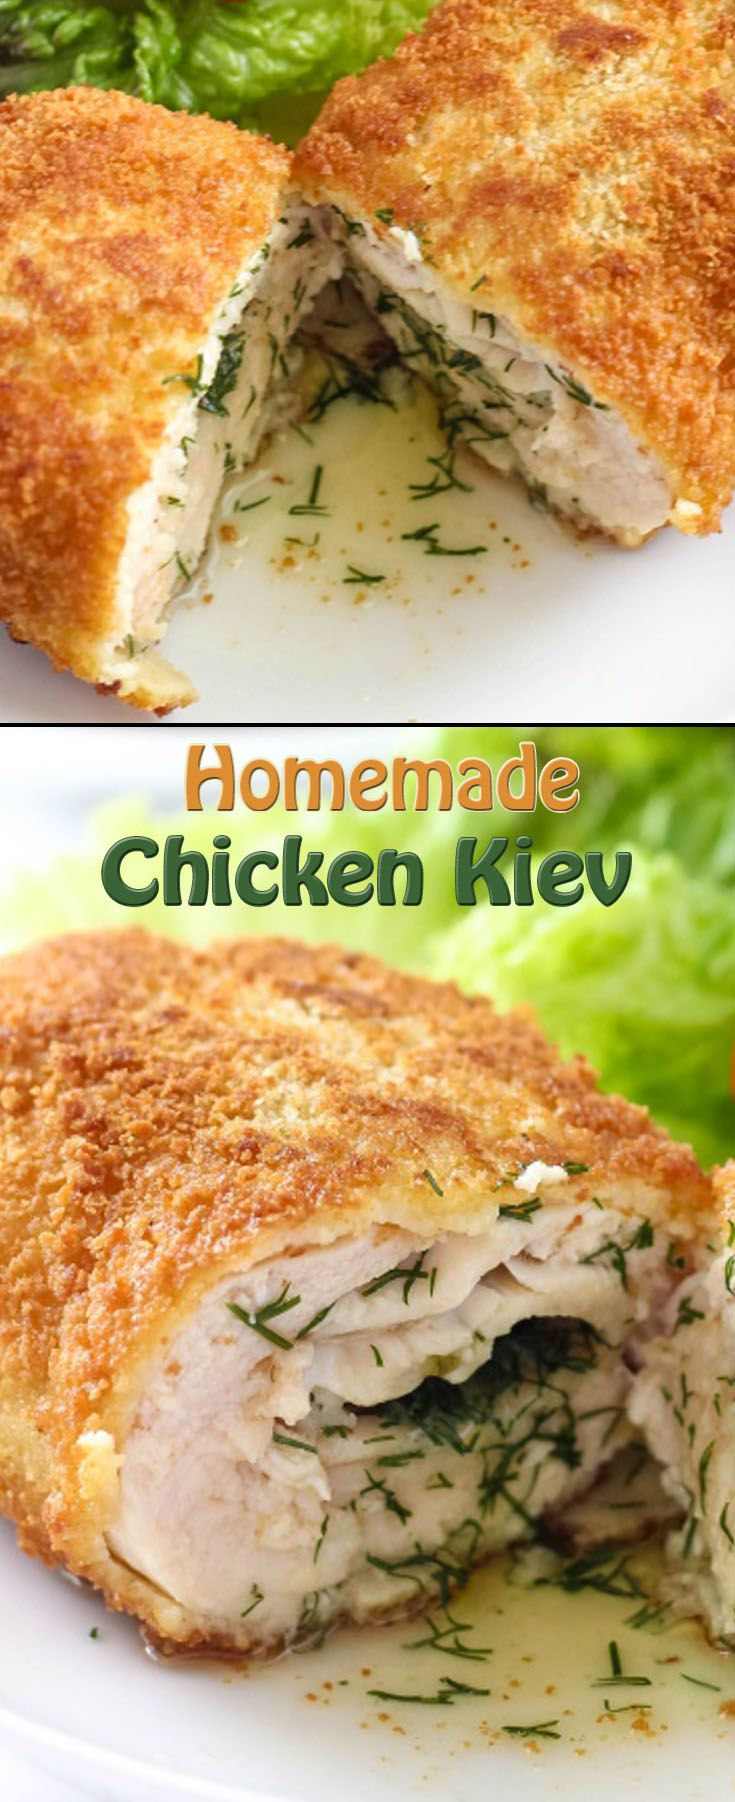 Homemade Chicken Kiev